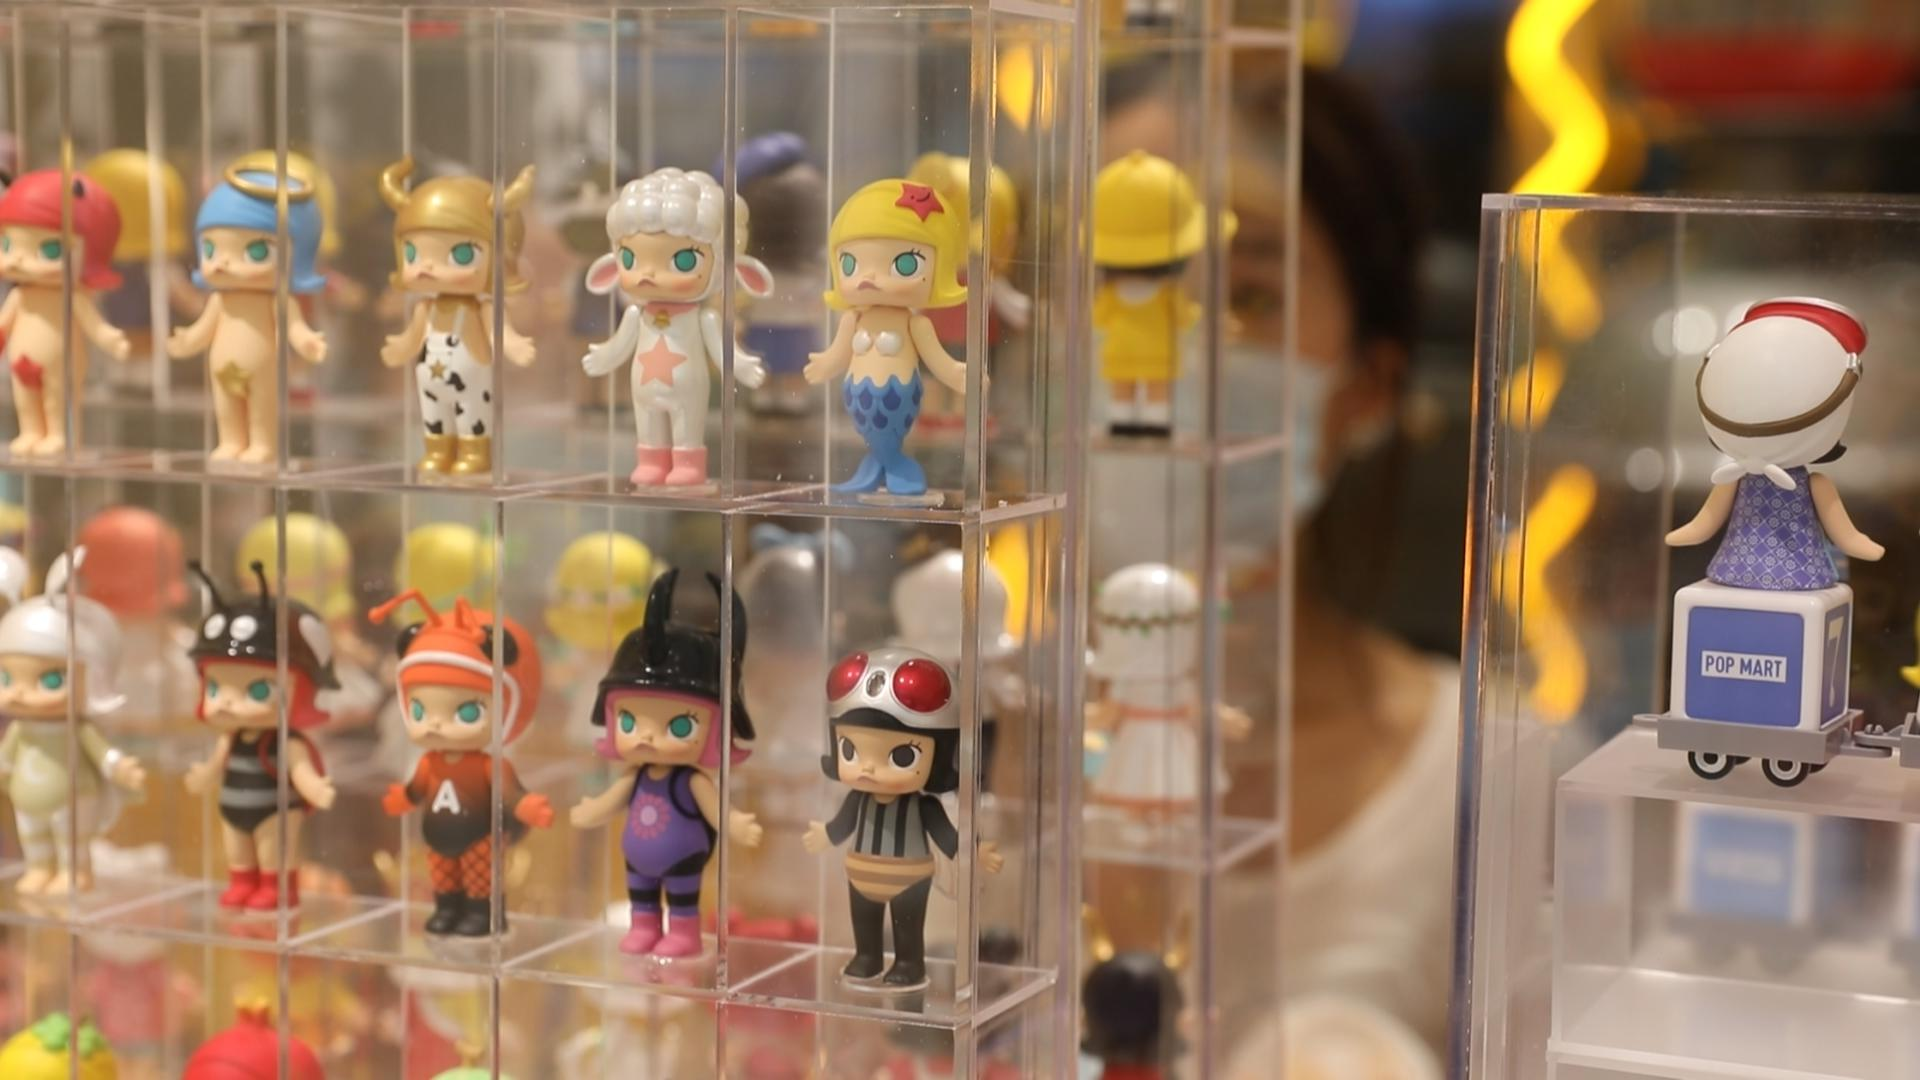 New Money: China's designer toy market grows at warp speed as need for spiritual consumption rises